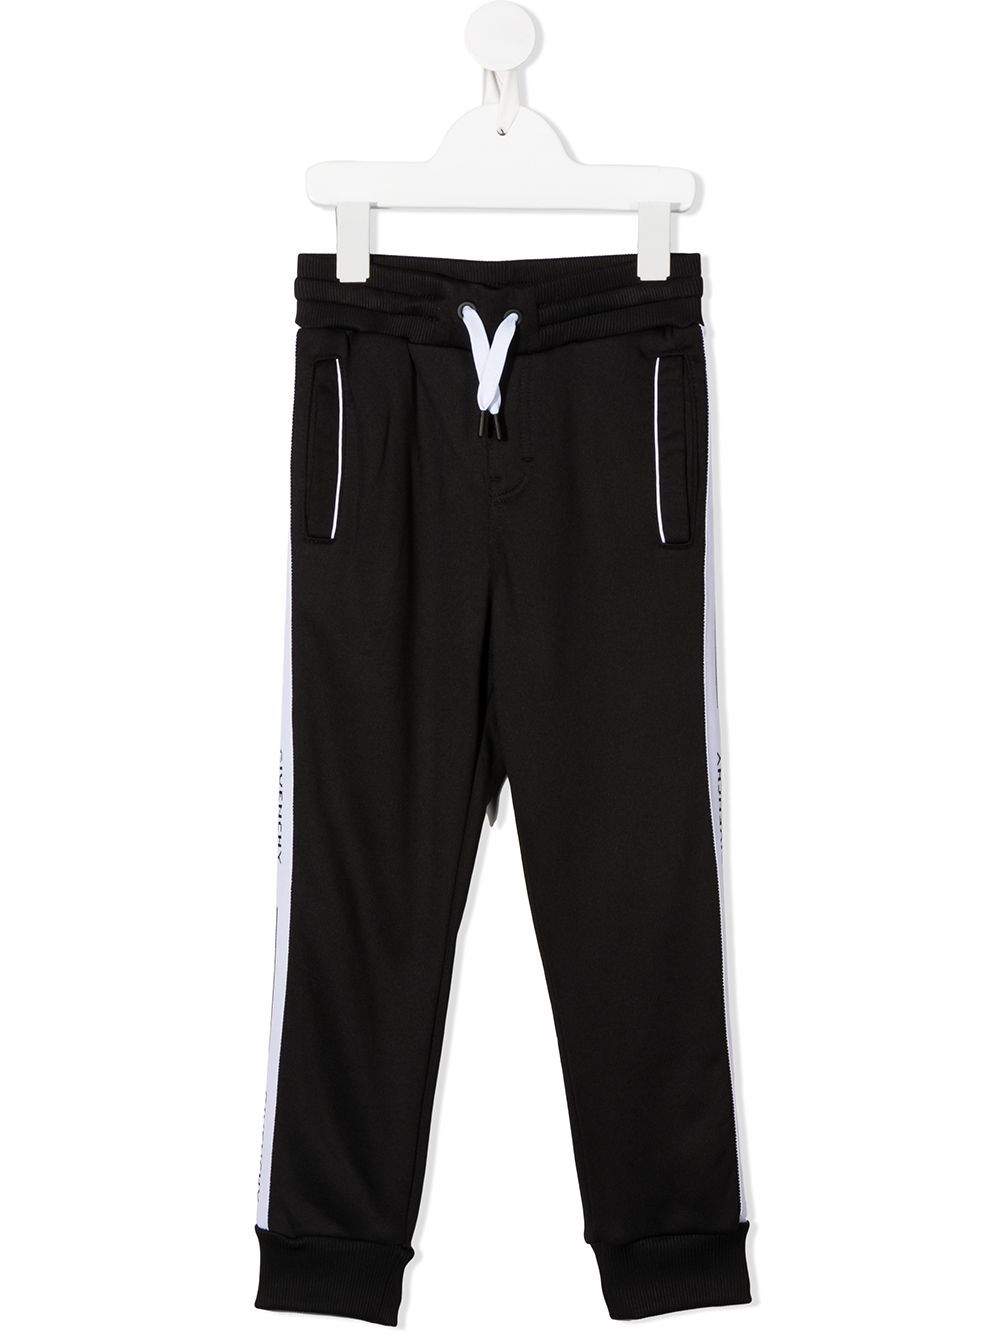 GIVENCHY KIDS Logo Sweatpants Black/White - Maison De Fashion